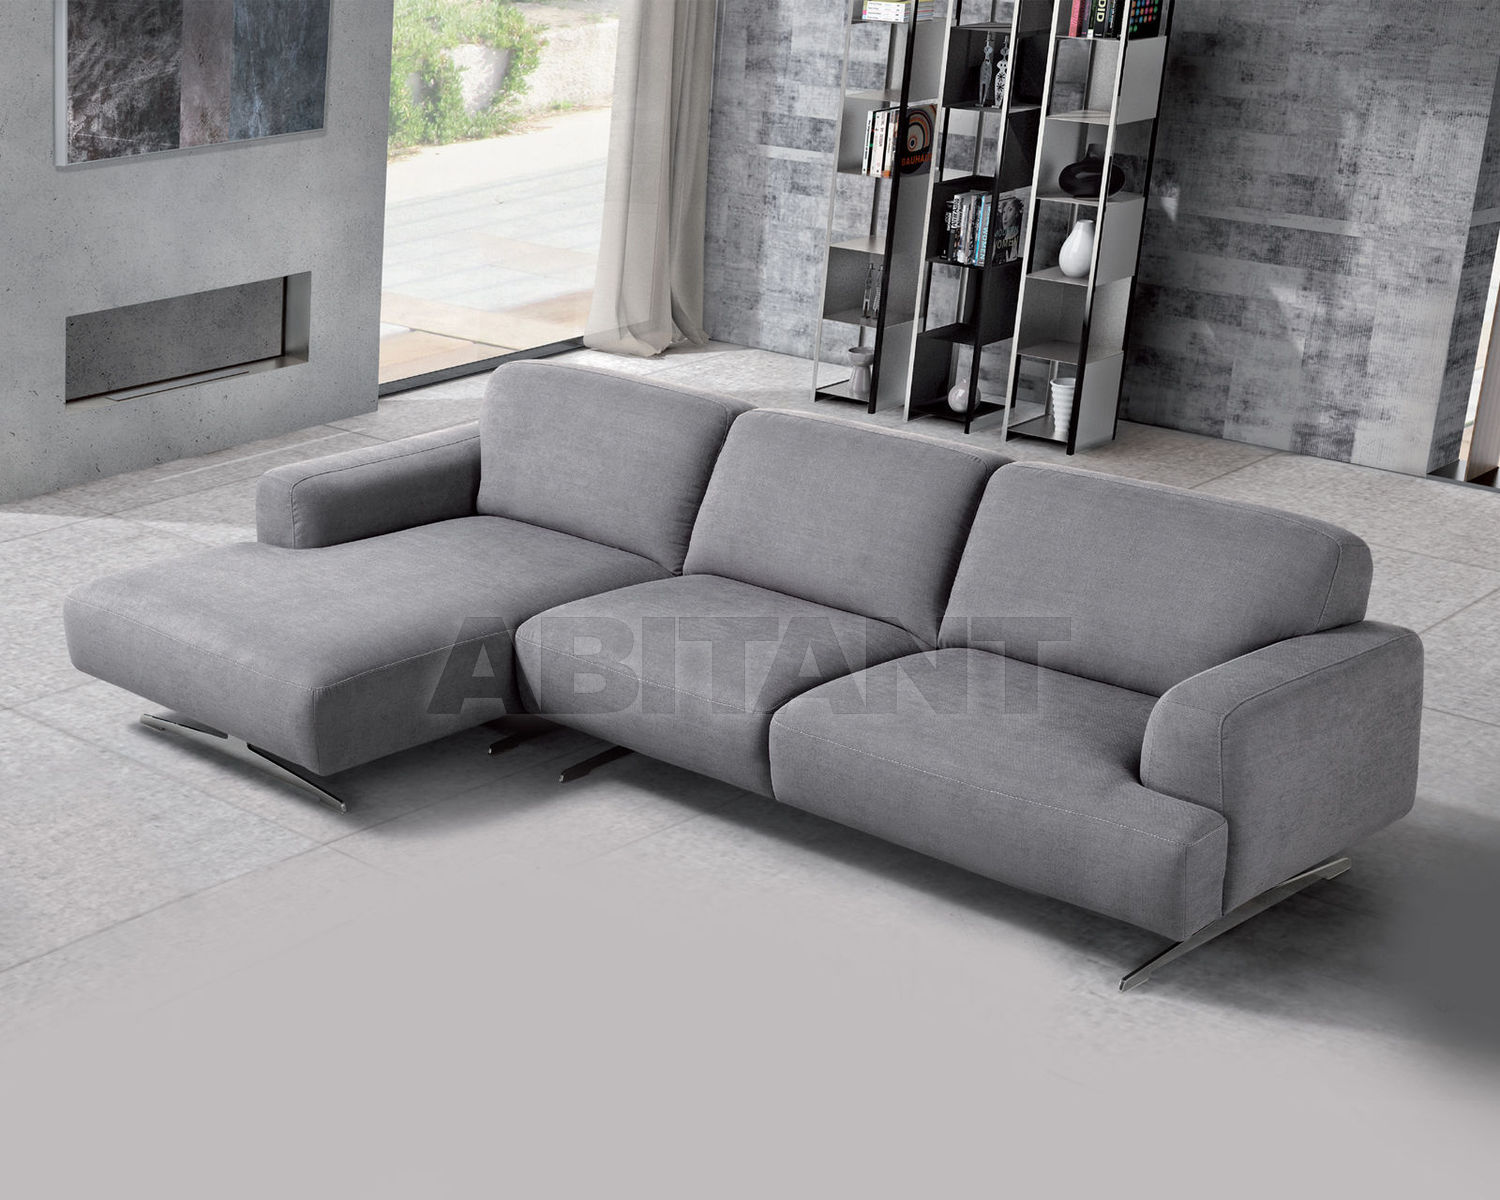 Peachy Sofa Vox Gray Loiudiced Vox Chaise Longue 1 Br 3 Posti 1 Caraccident5 Cool Chair Designs And Ideas Caraccident5Info